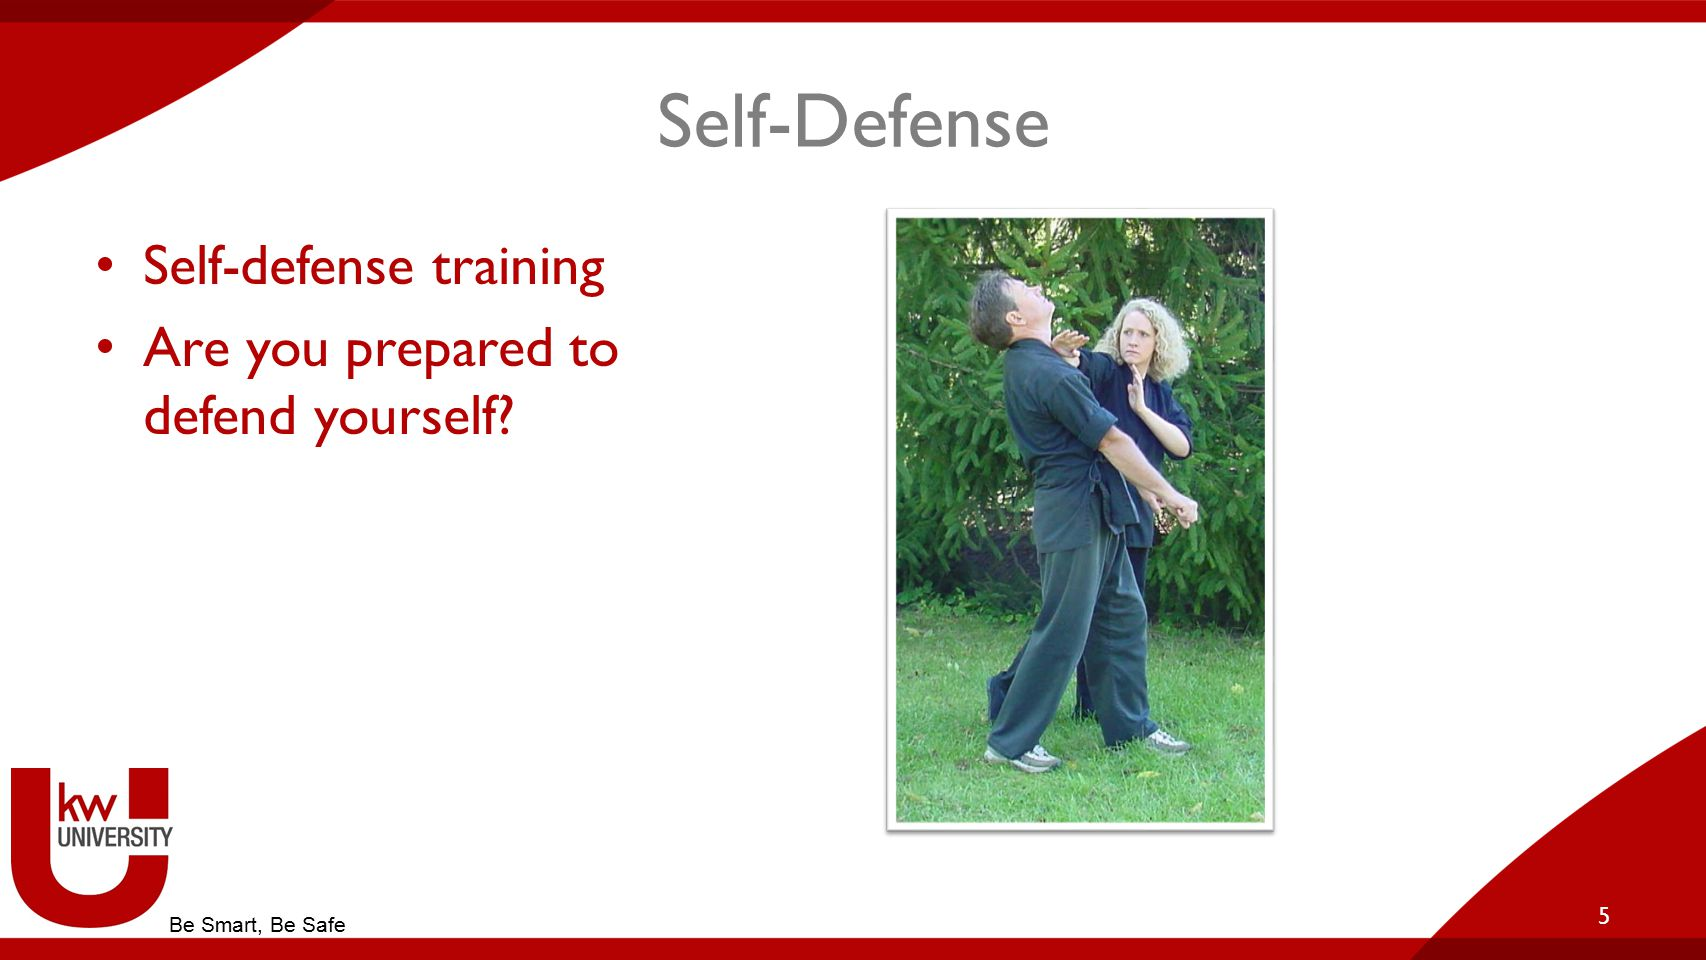 Self-Defense Self-defense training Are you prepared to defend yourself 5 Be Smart, Be Safe